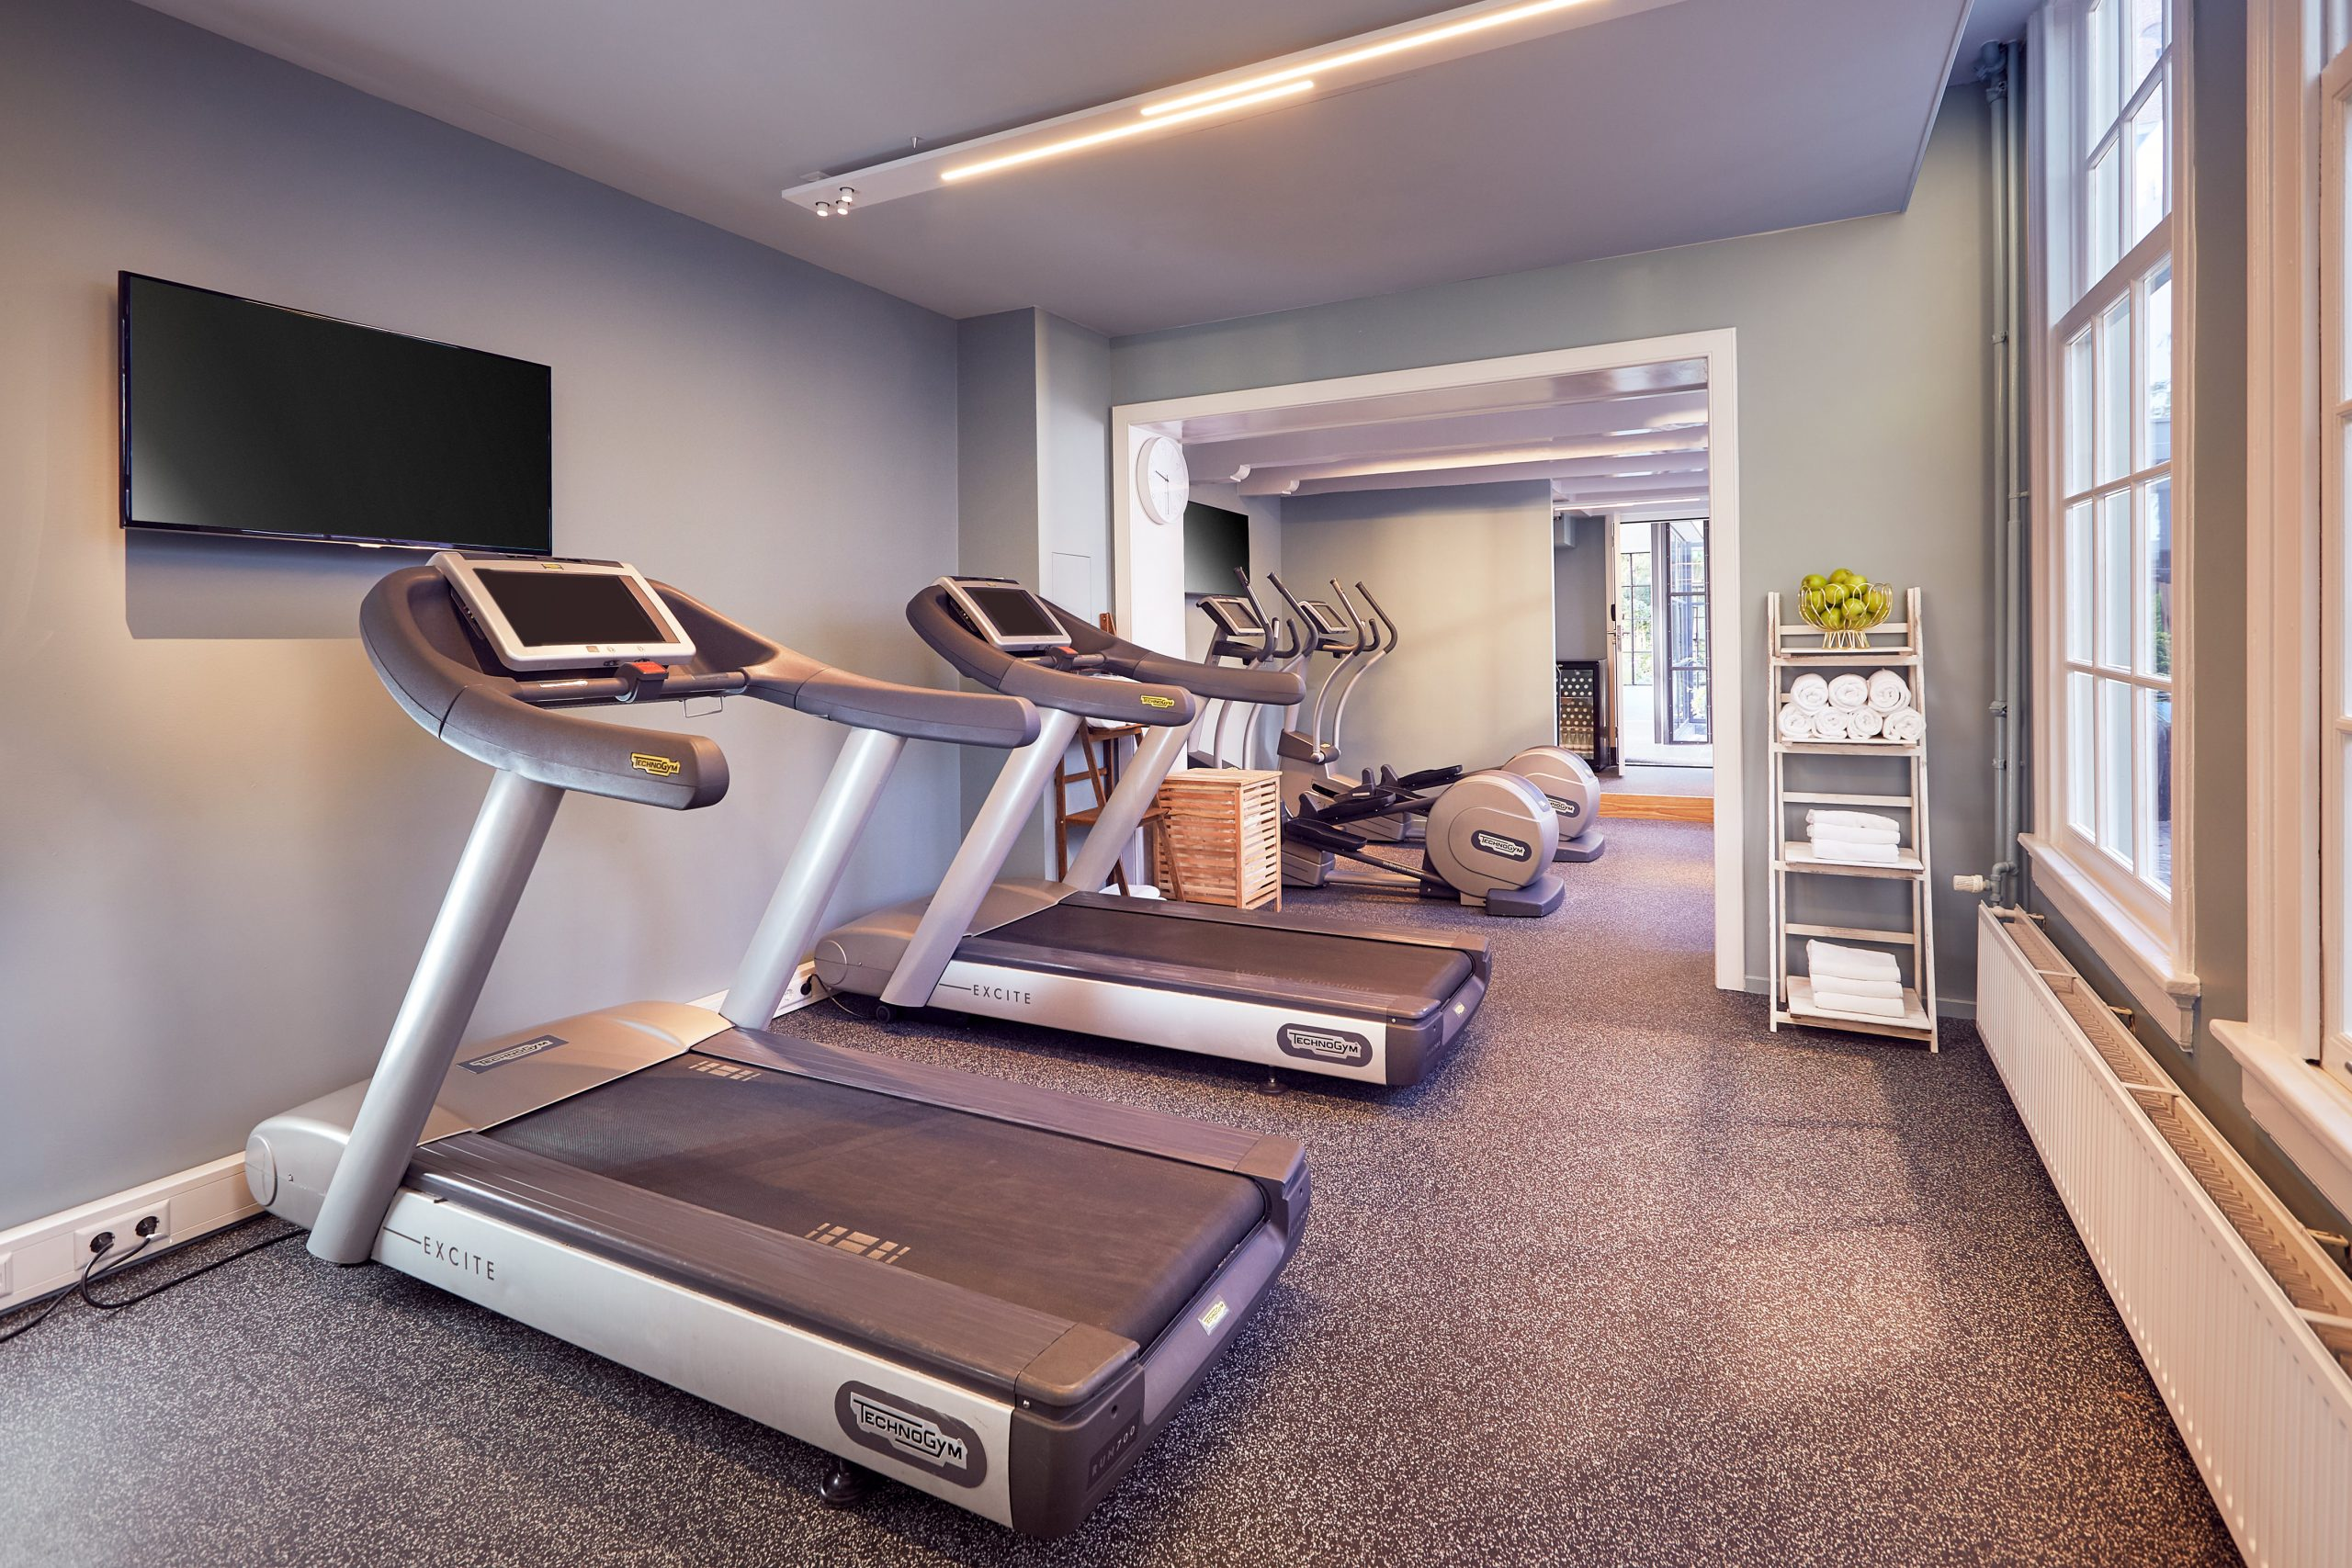 Gym - Downstairs